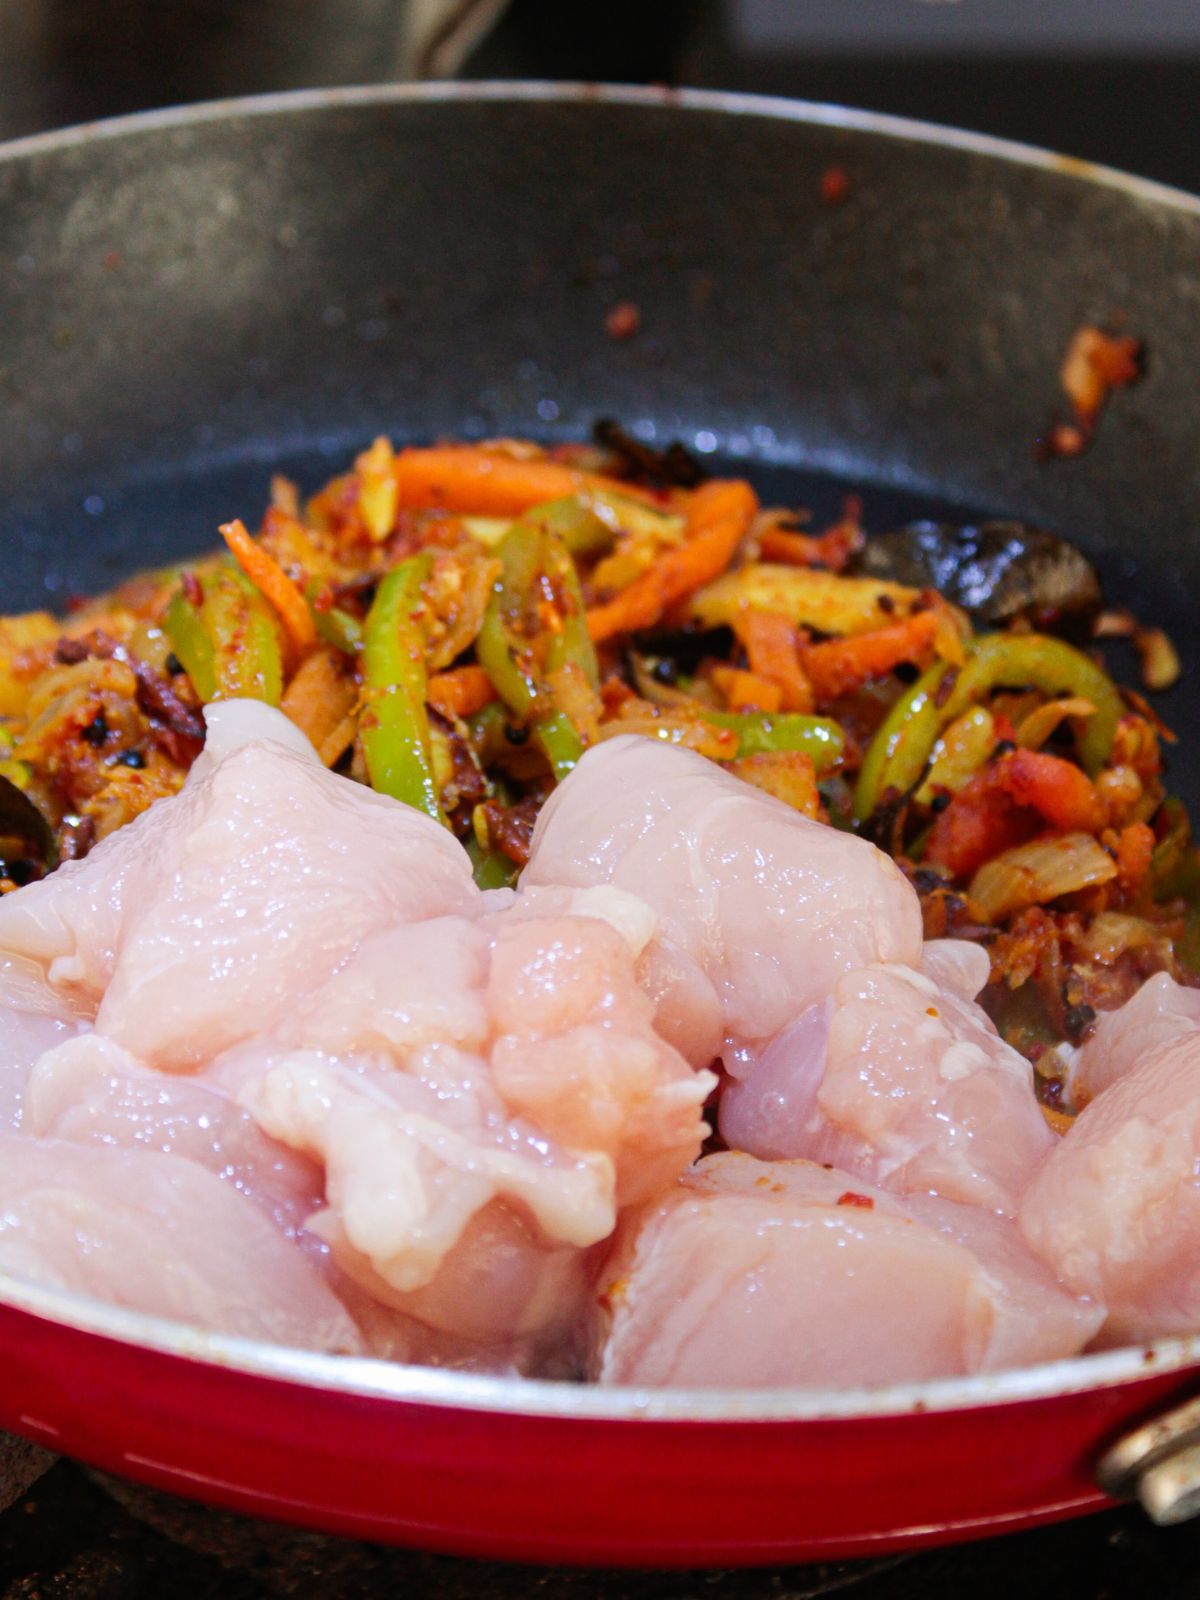 Raw chicken in skillet by vegetables